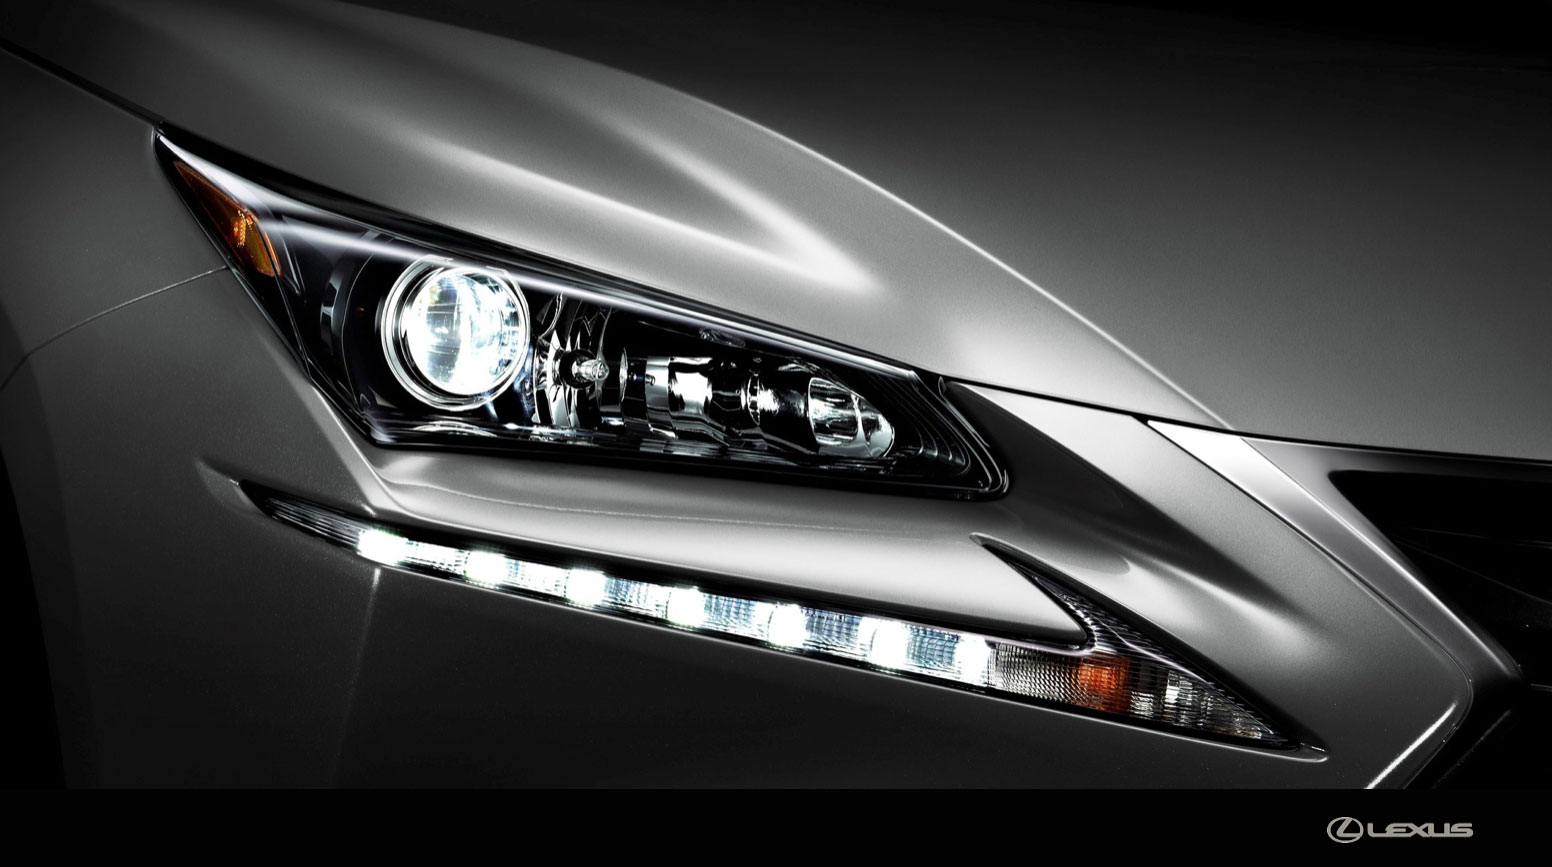 lexus nx standard led headlights. Black Bedroom Furniture Sets. Home Design Ideas